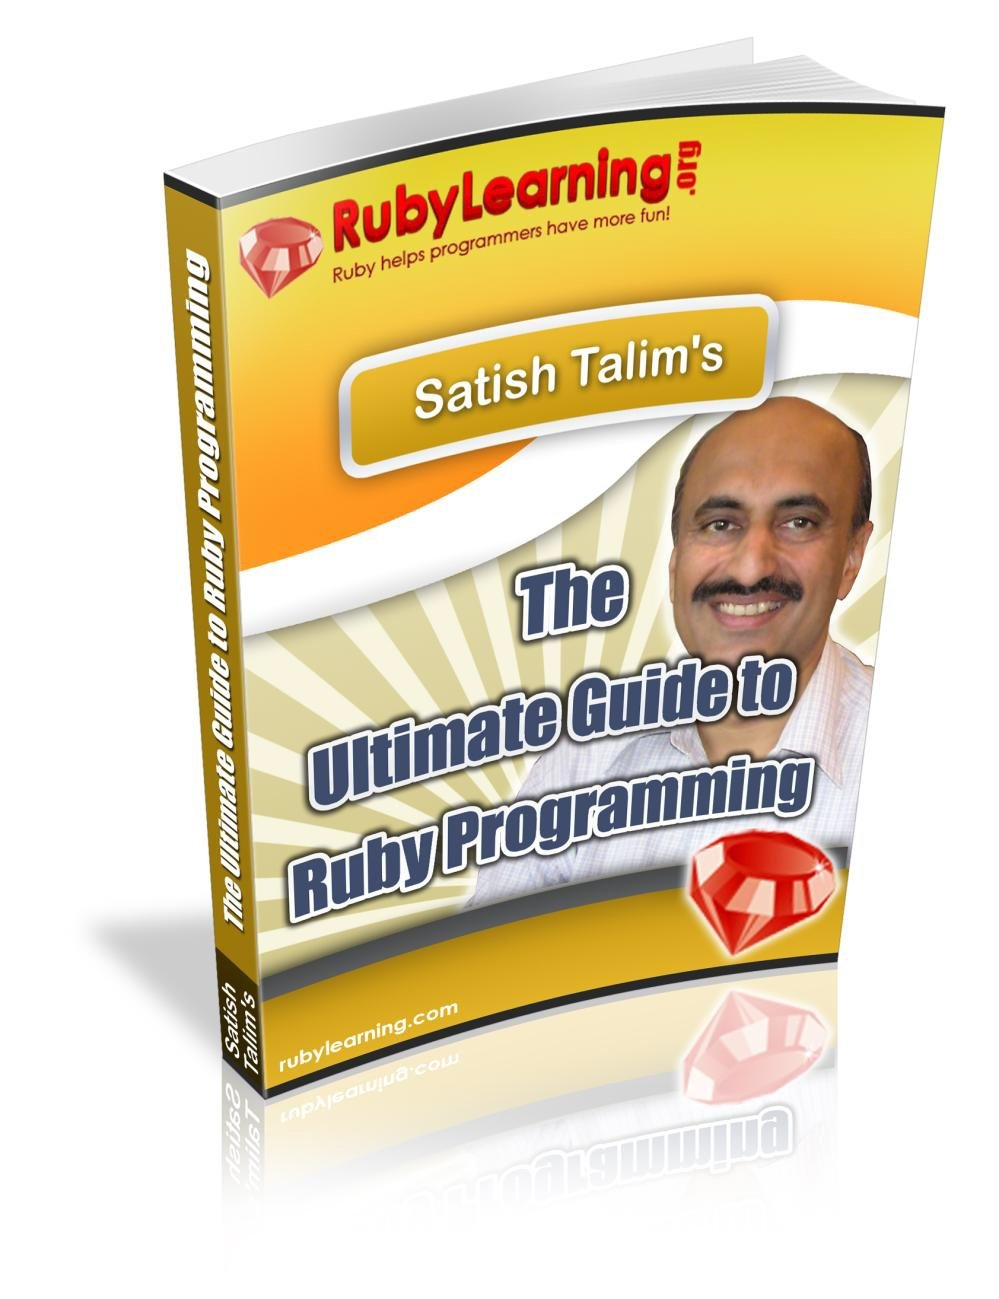 The Ultimate Guide to Ruby Programming